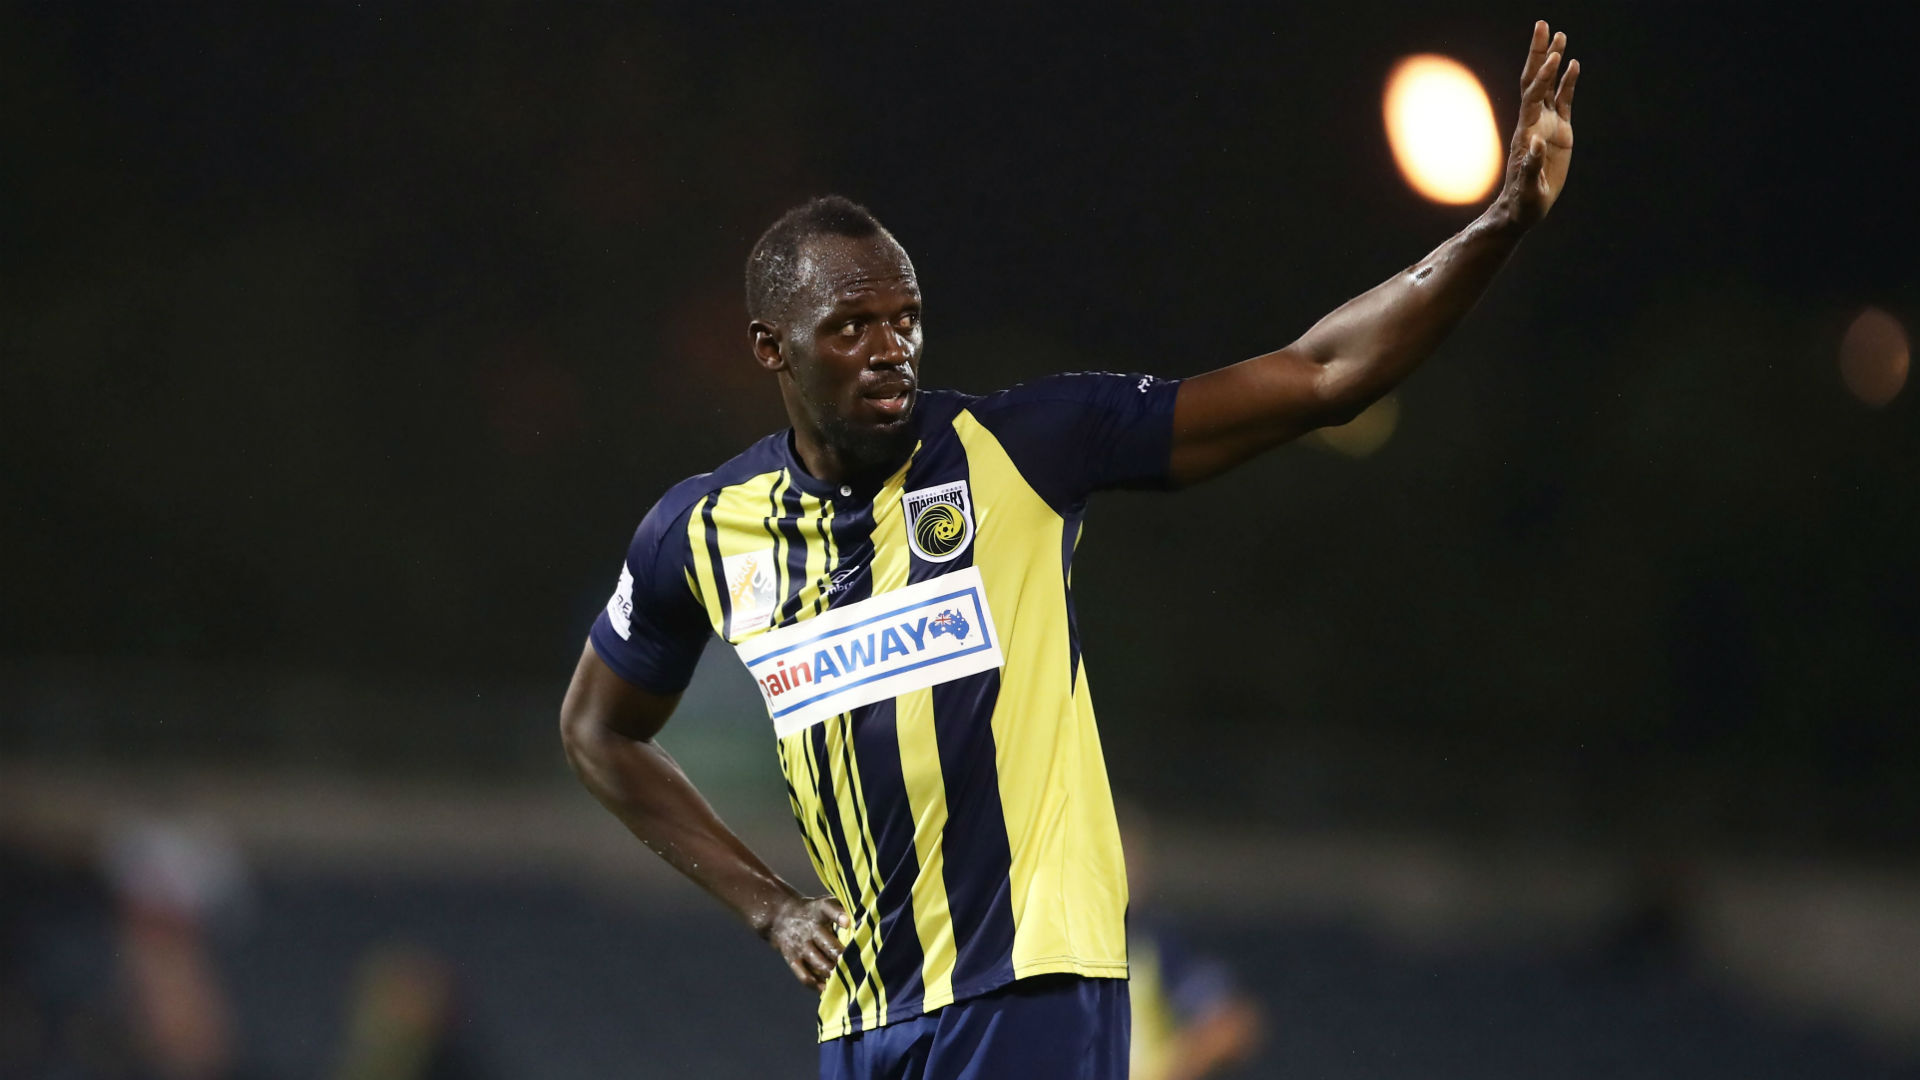 Usain Bolt Lands Football Contract From European Club